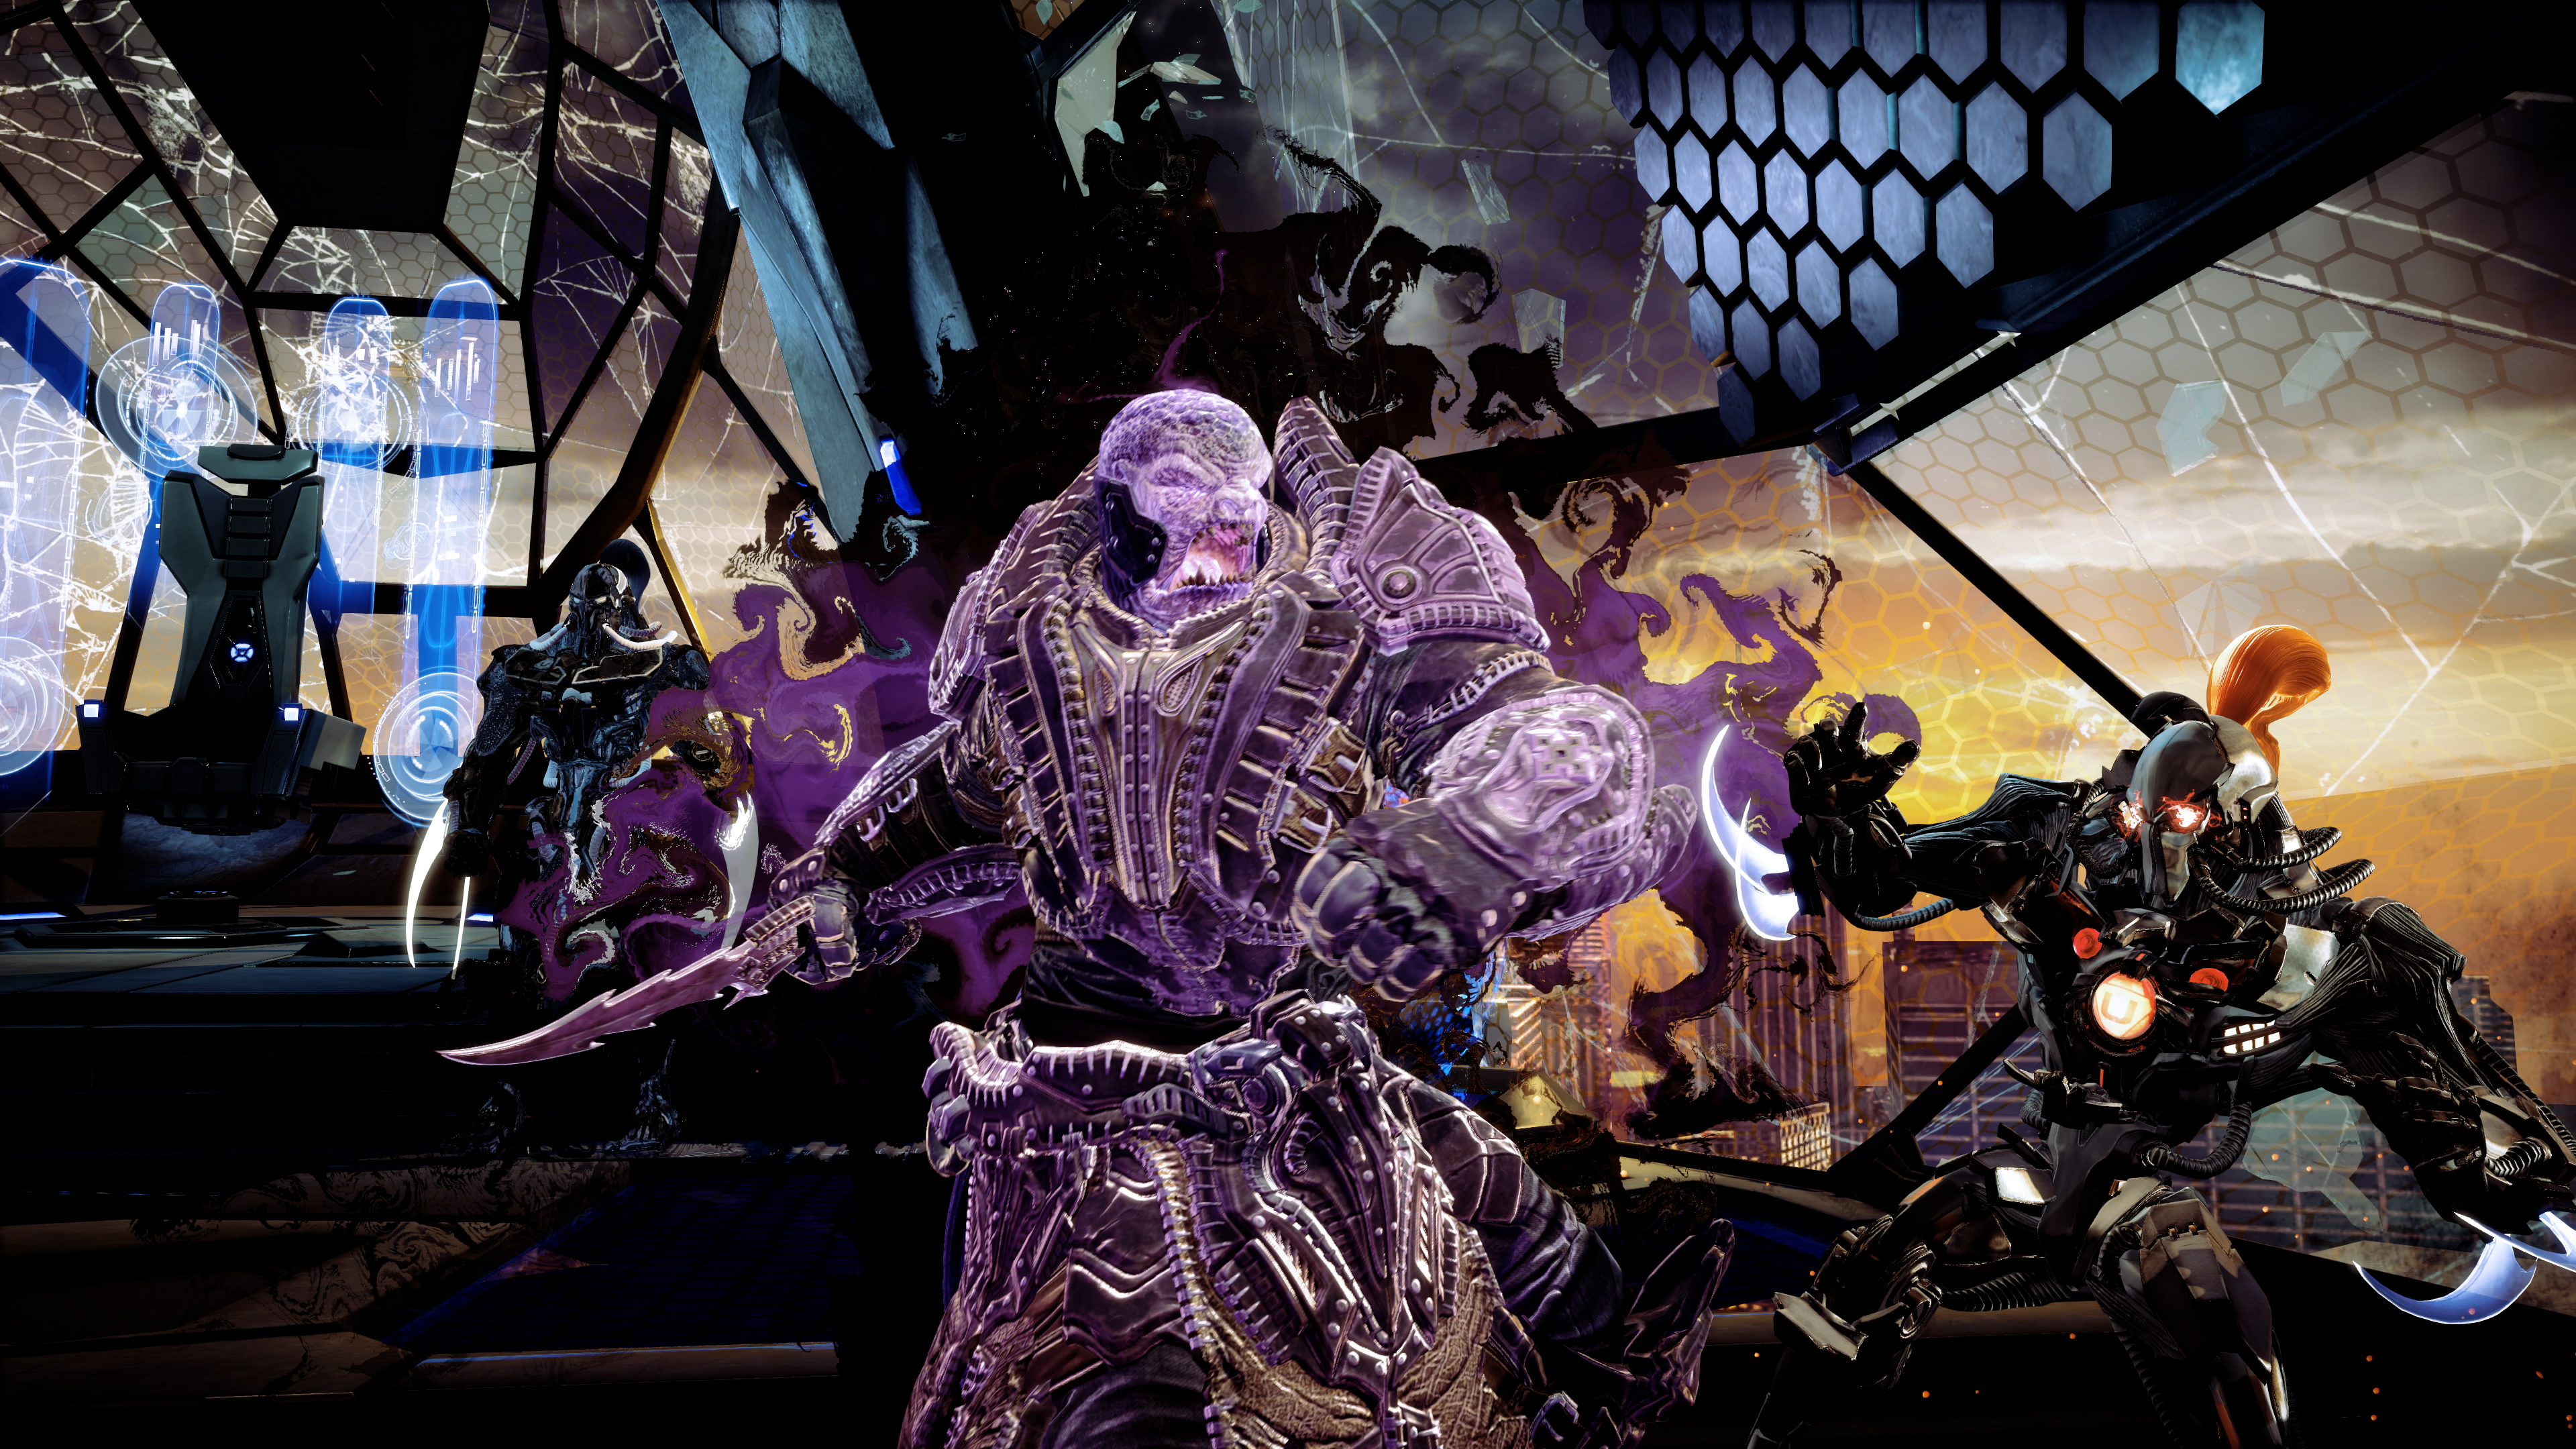 Hi all Killer Instinct fans! It has been quite a long time hasnt it As we all know KI news isnt quite what it used to be with the games receiving little to no new updates or content for awhile now and